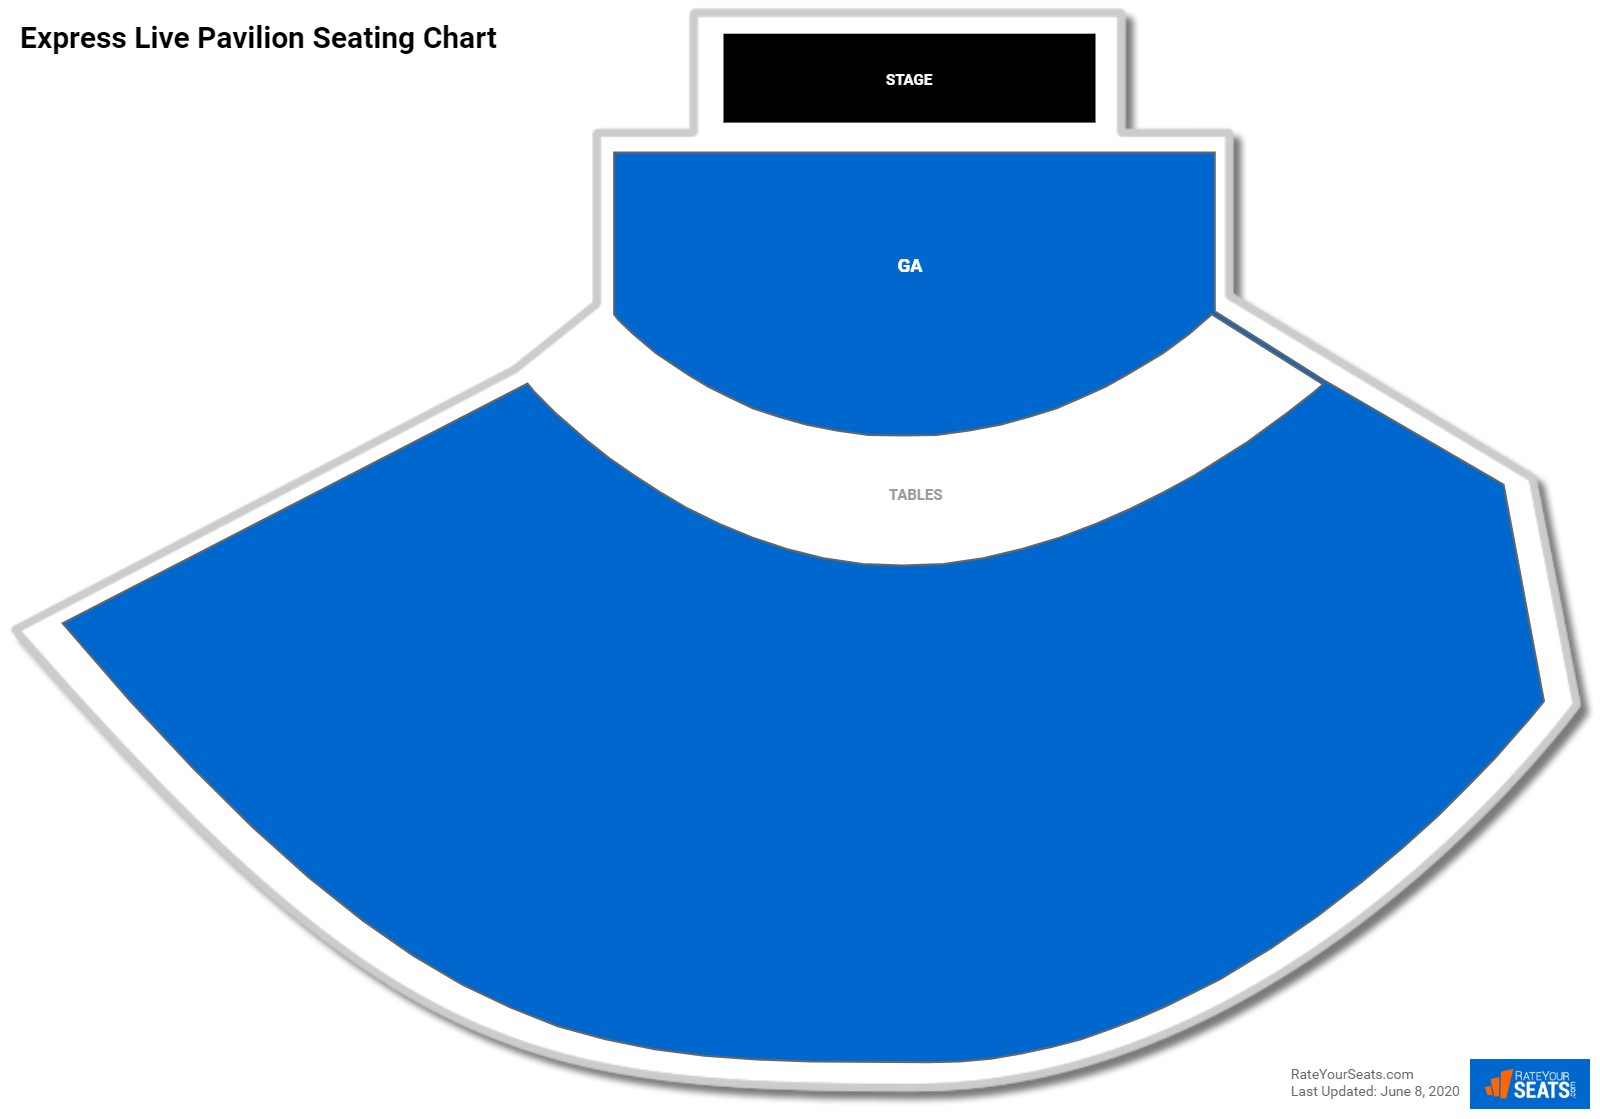 Express Live Pavilion Seating Chart